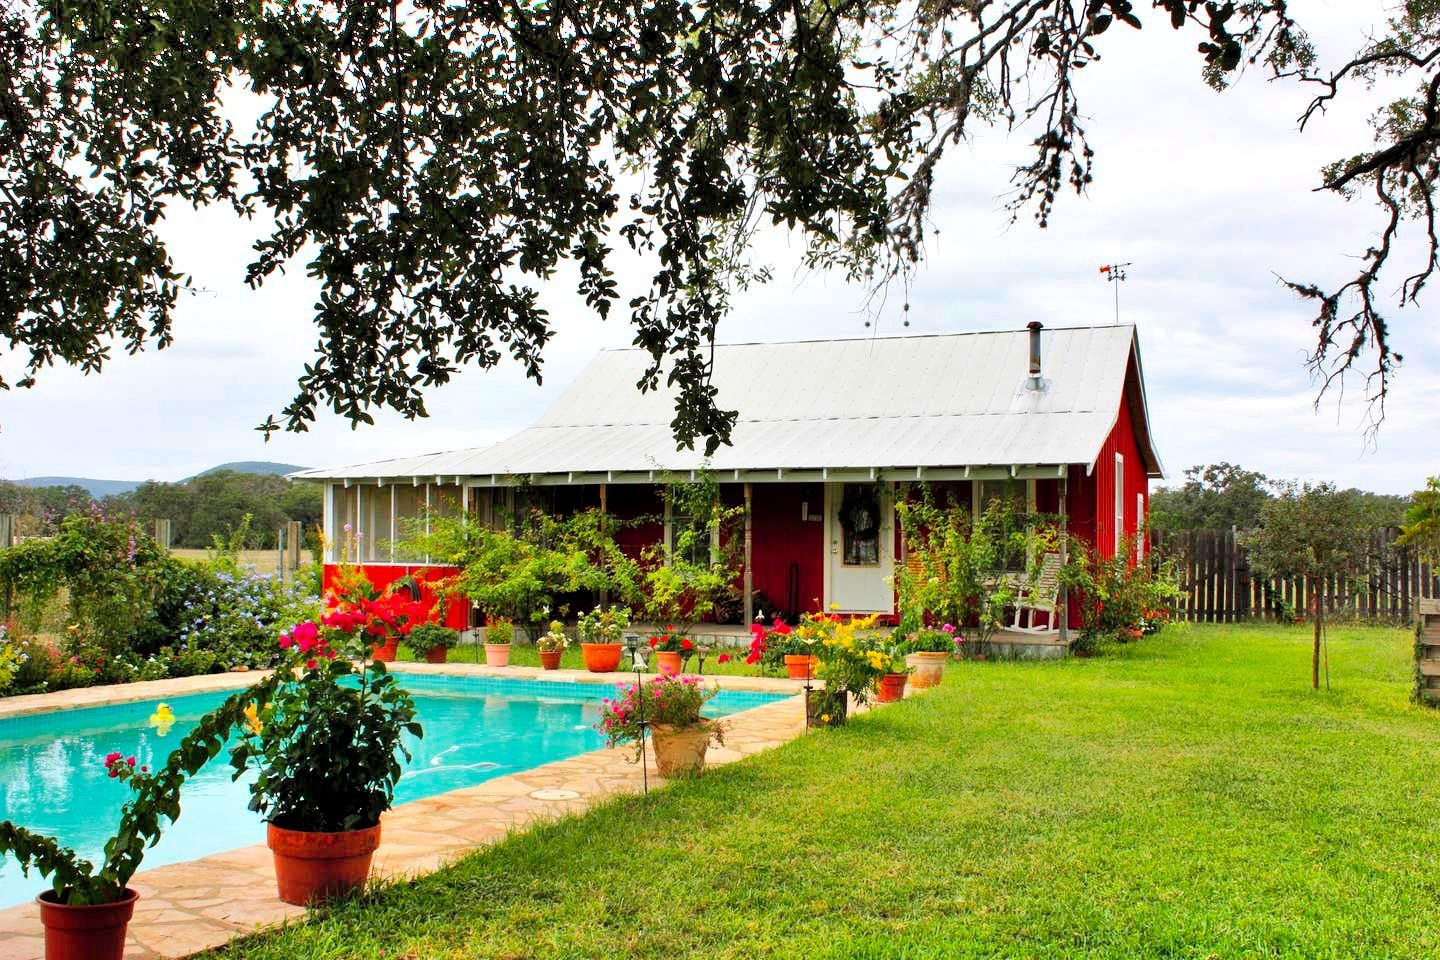 This Texas Hill Country vacation rental is ideal for getaways near San Antonio